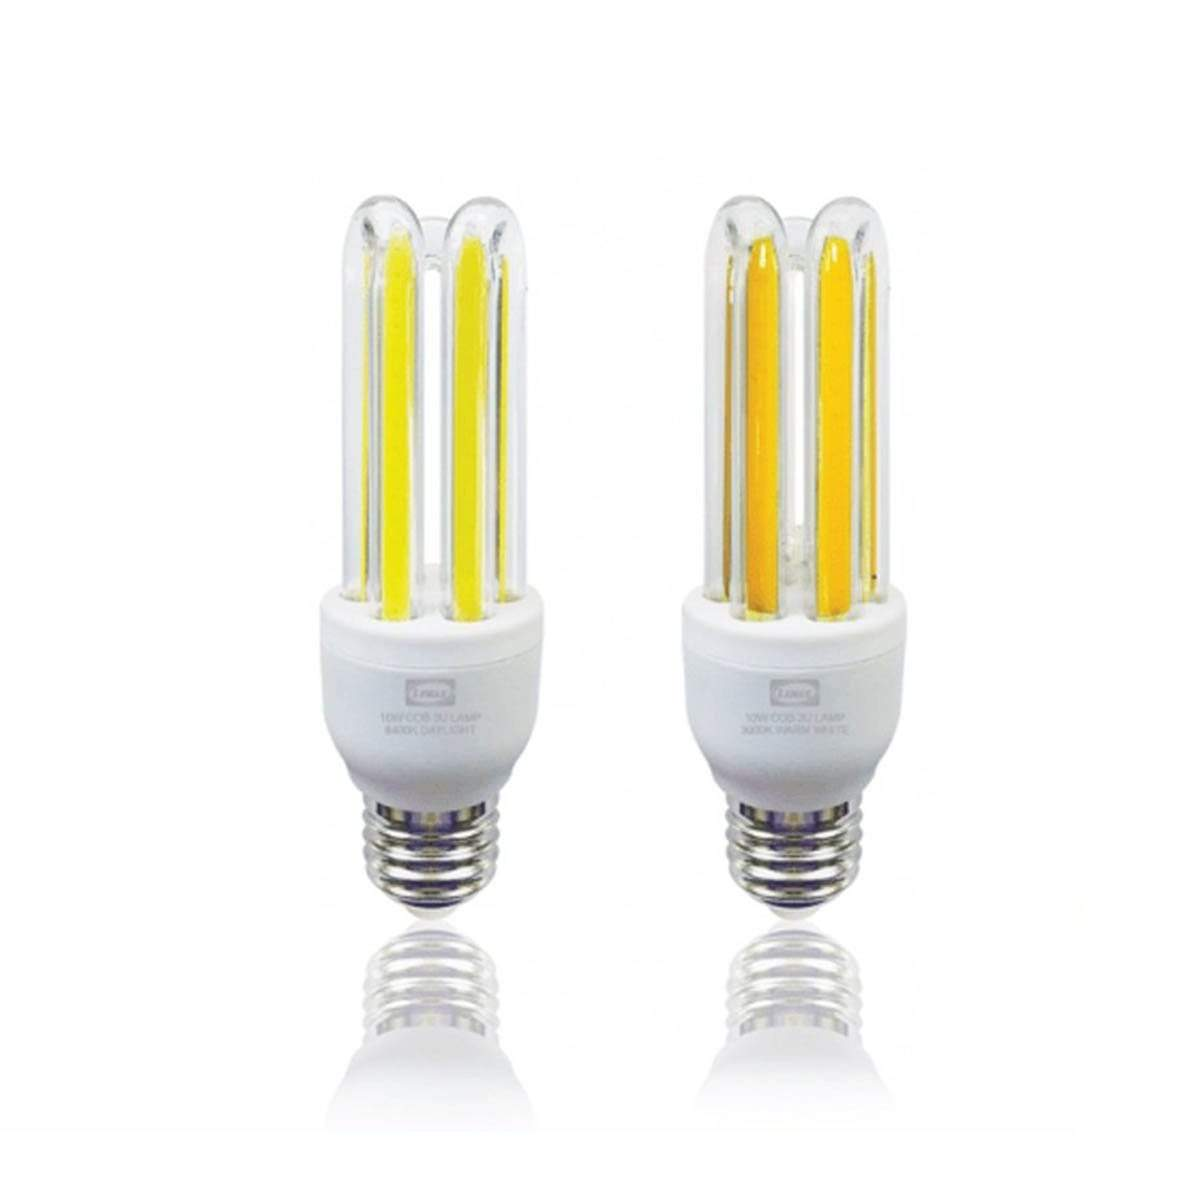 LEMAX 10W LED COB 3U Lamp 6400K Daylight NSL-10